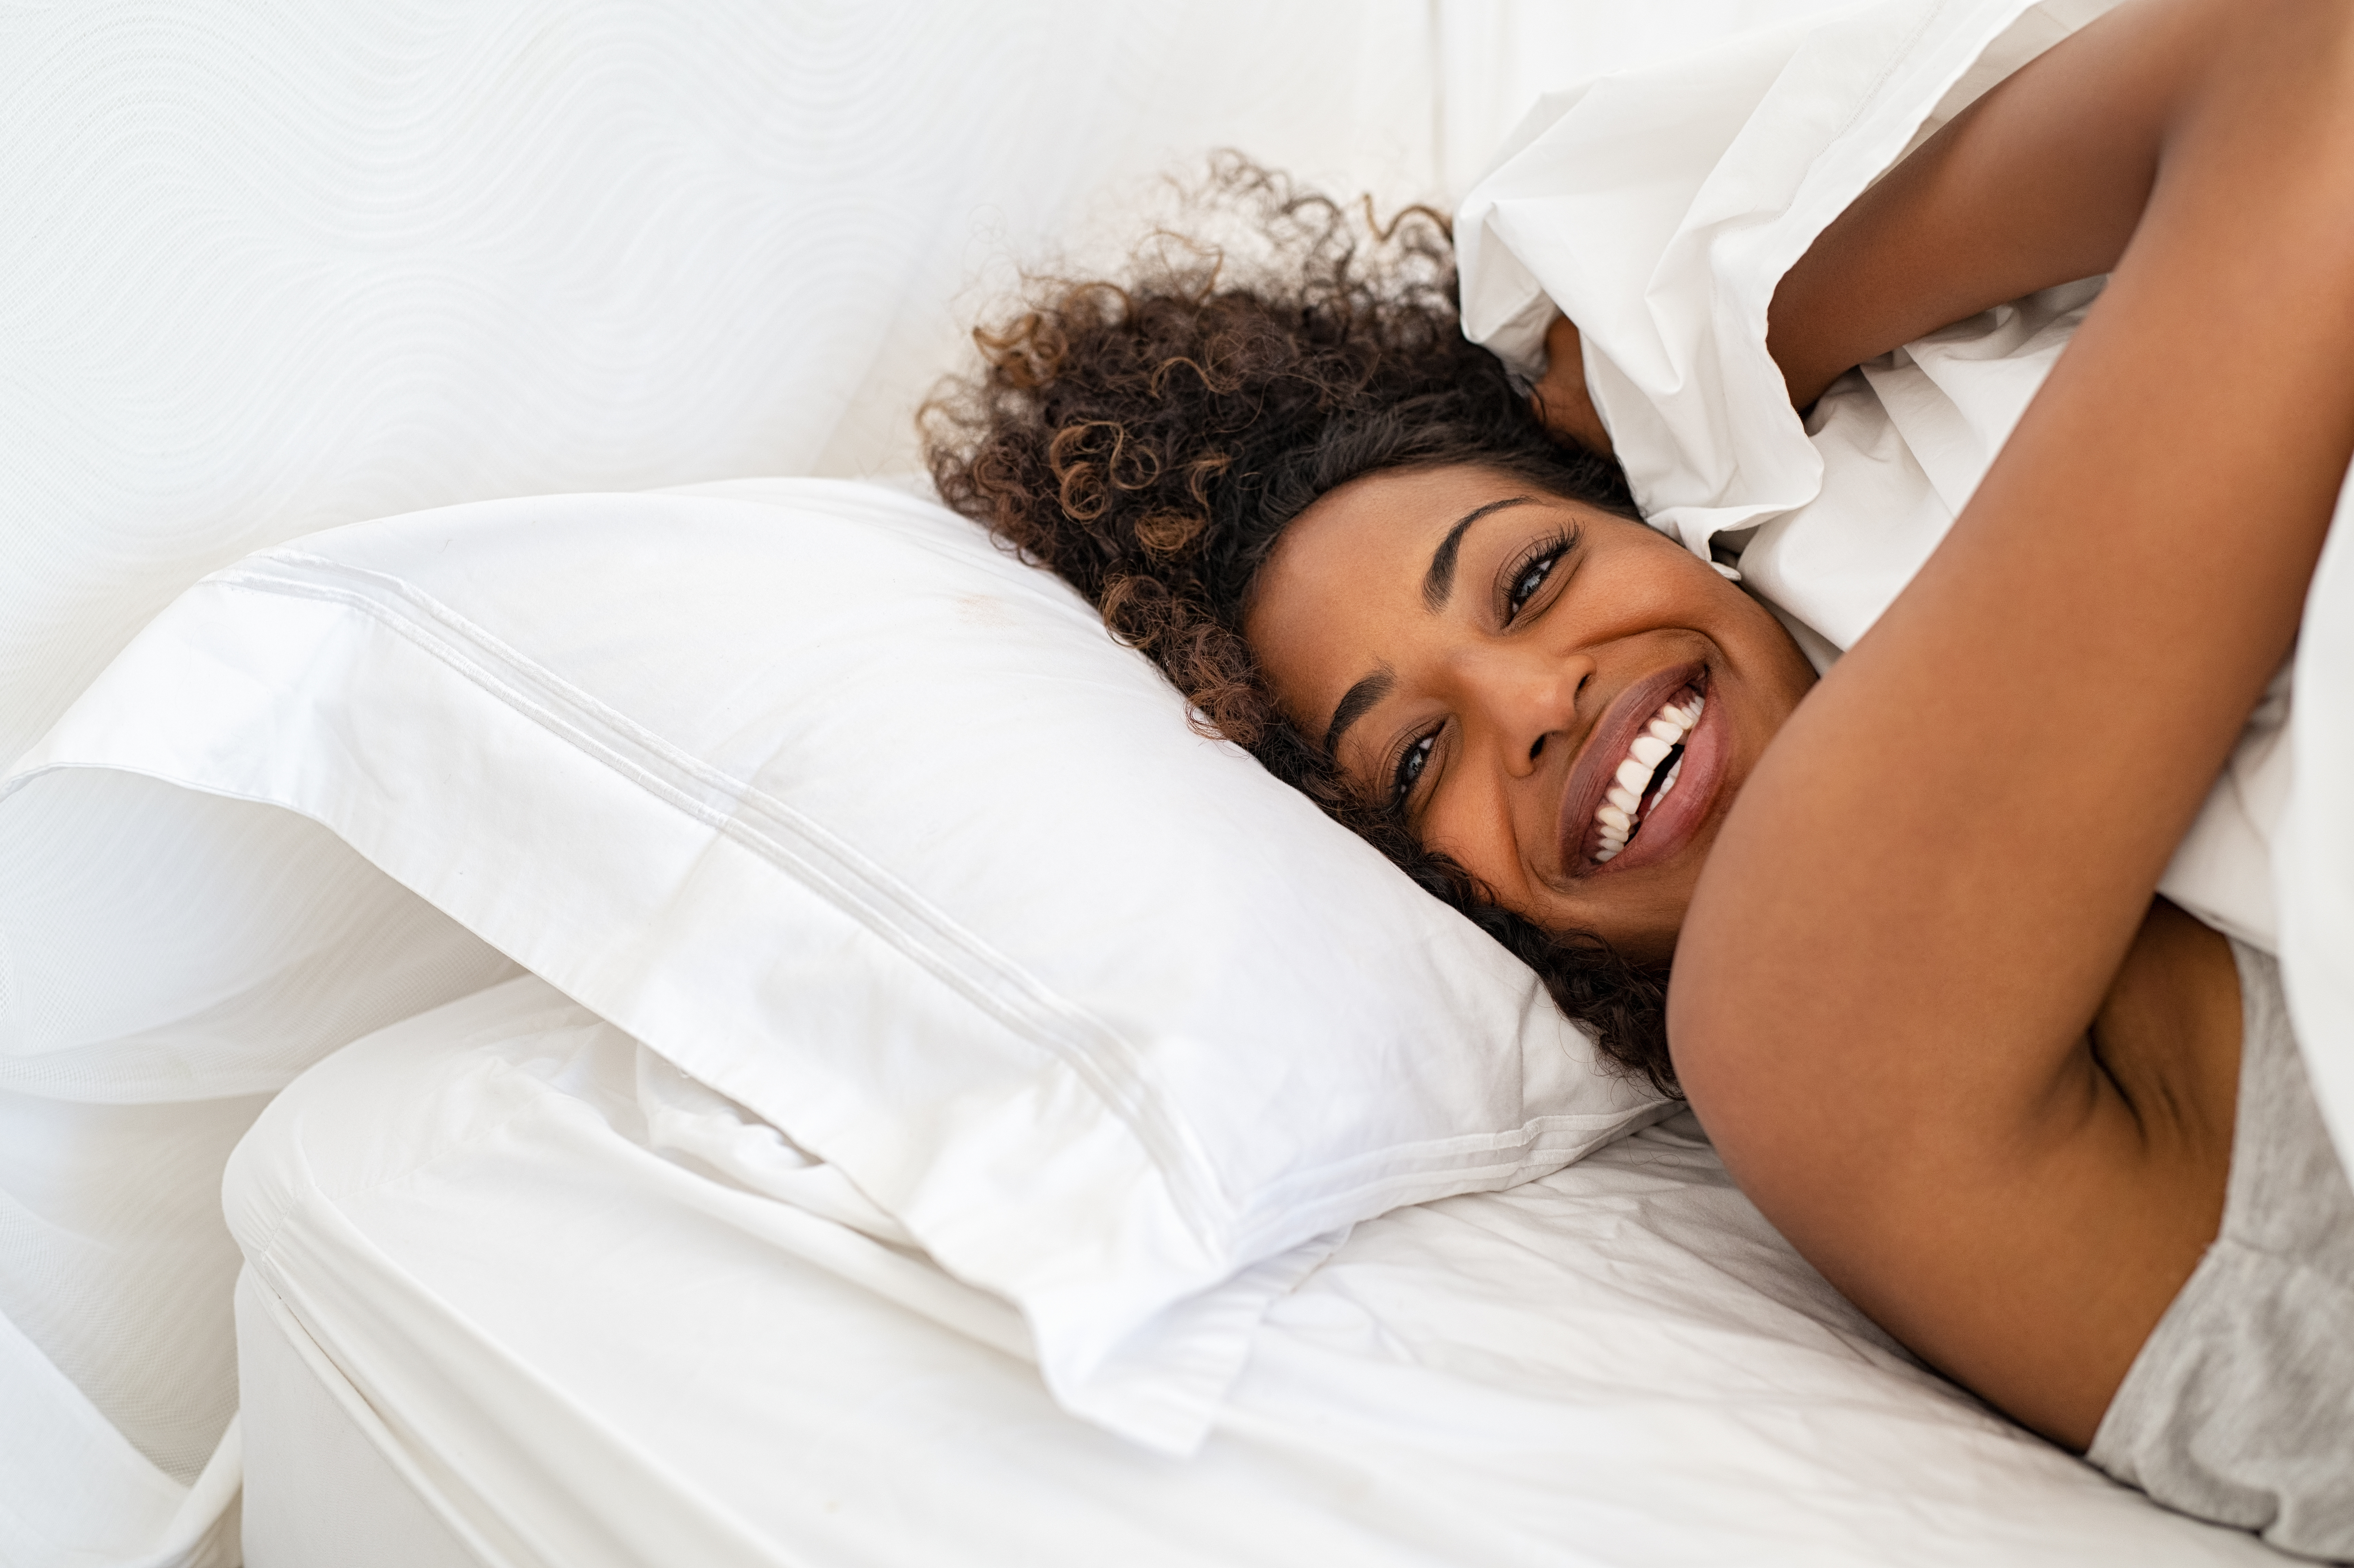 Cheerful young woman lying on bed playing with blanket and looking at camera. African girl feeling fresh after nap on white bed with copy space. Laughing woman having fun while embracing pillow and blanket.